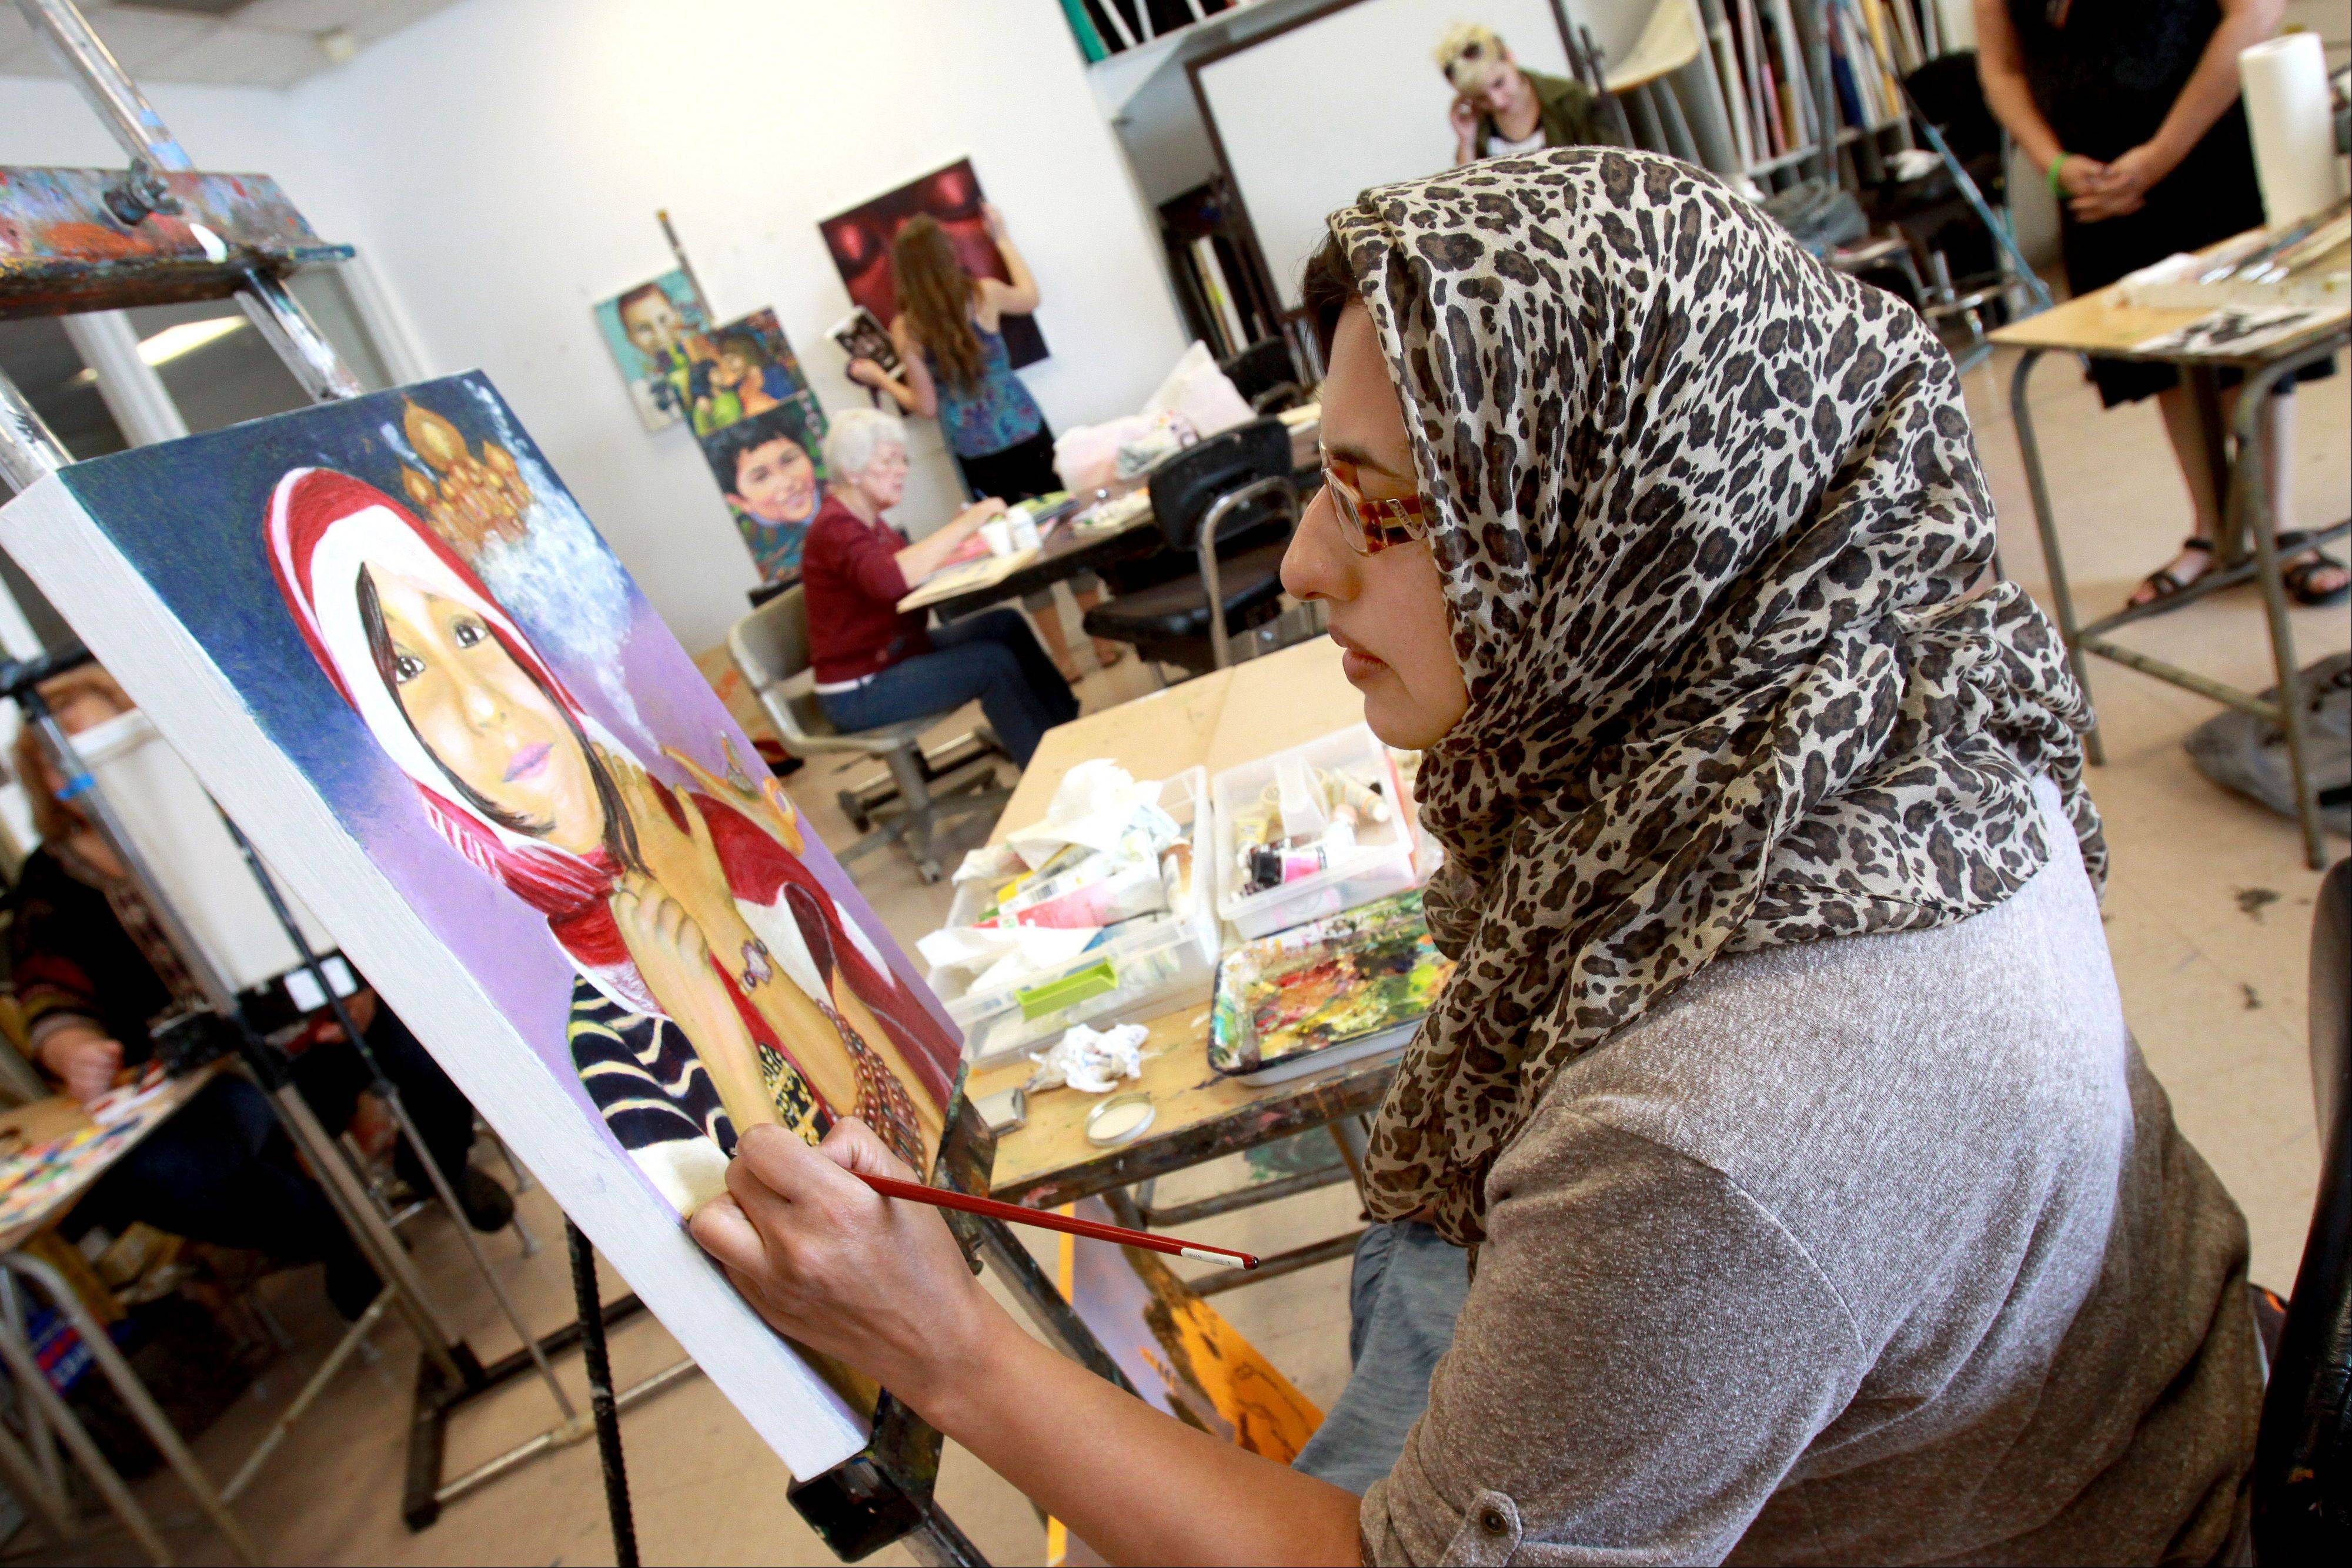 Shahin Safdar of Lombard paints a picture of her niece to show diversity and different cultures.